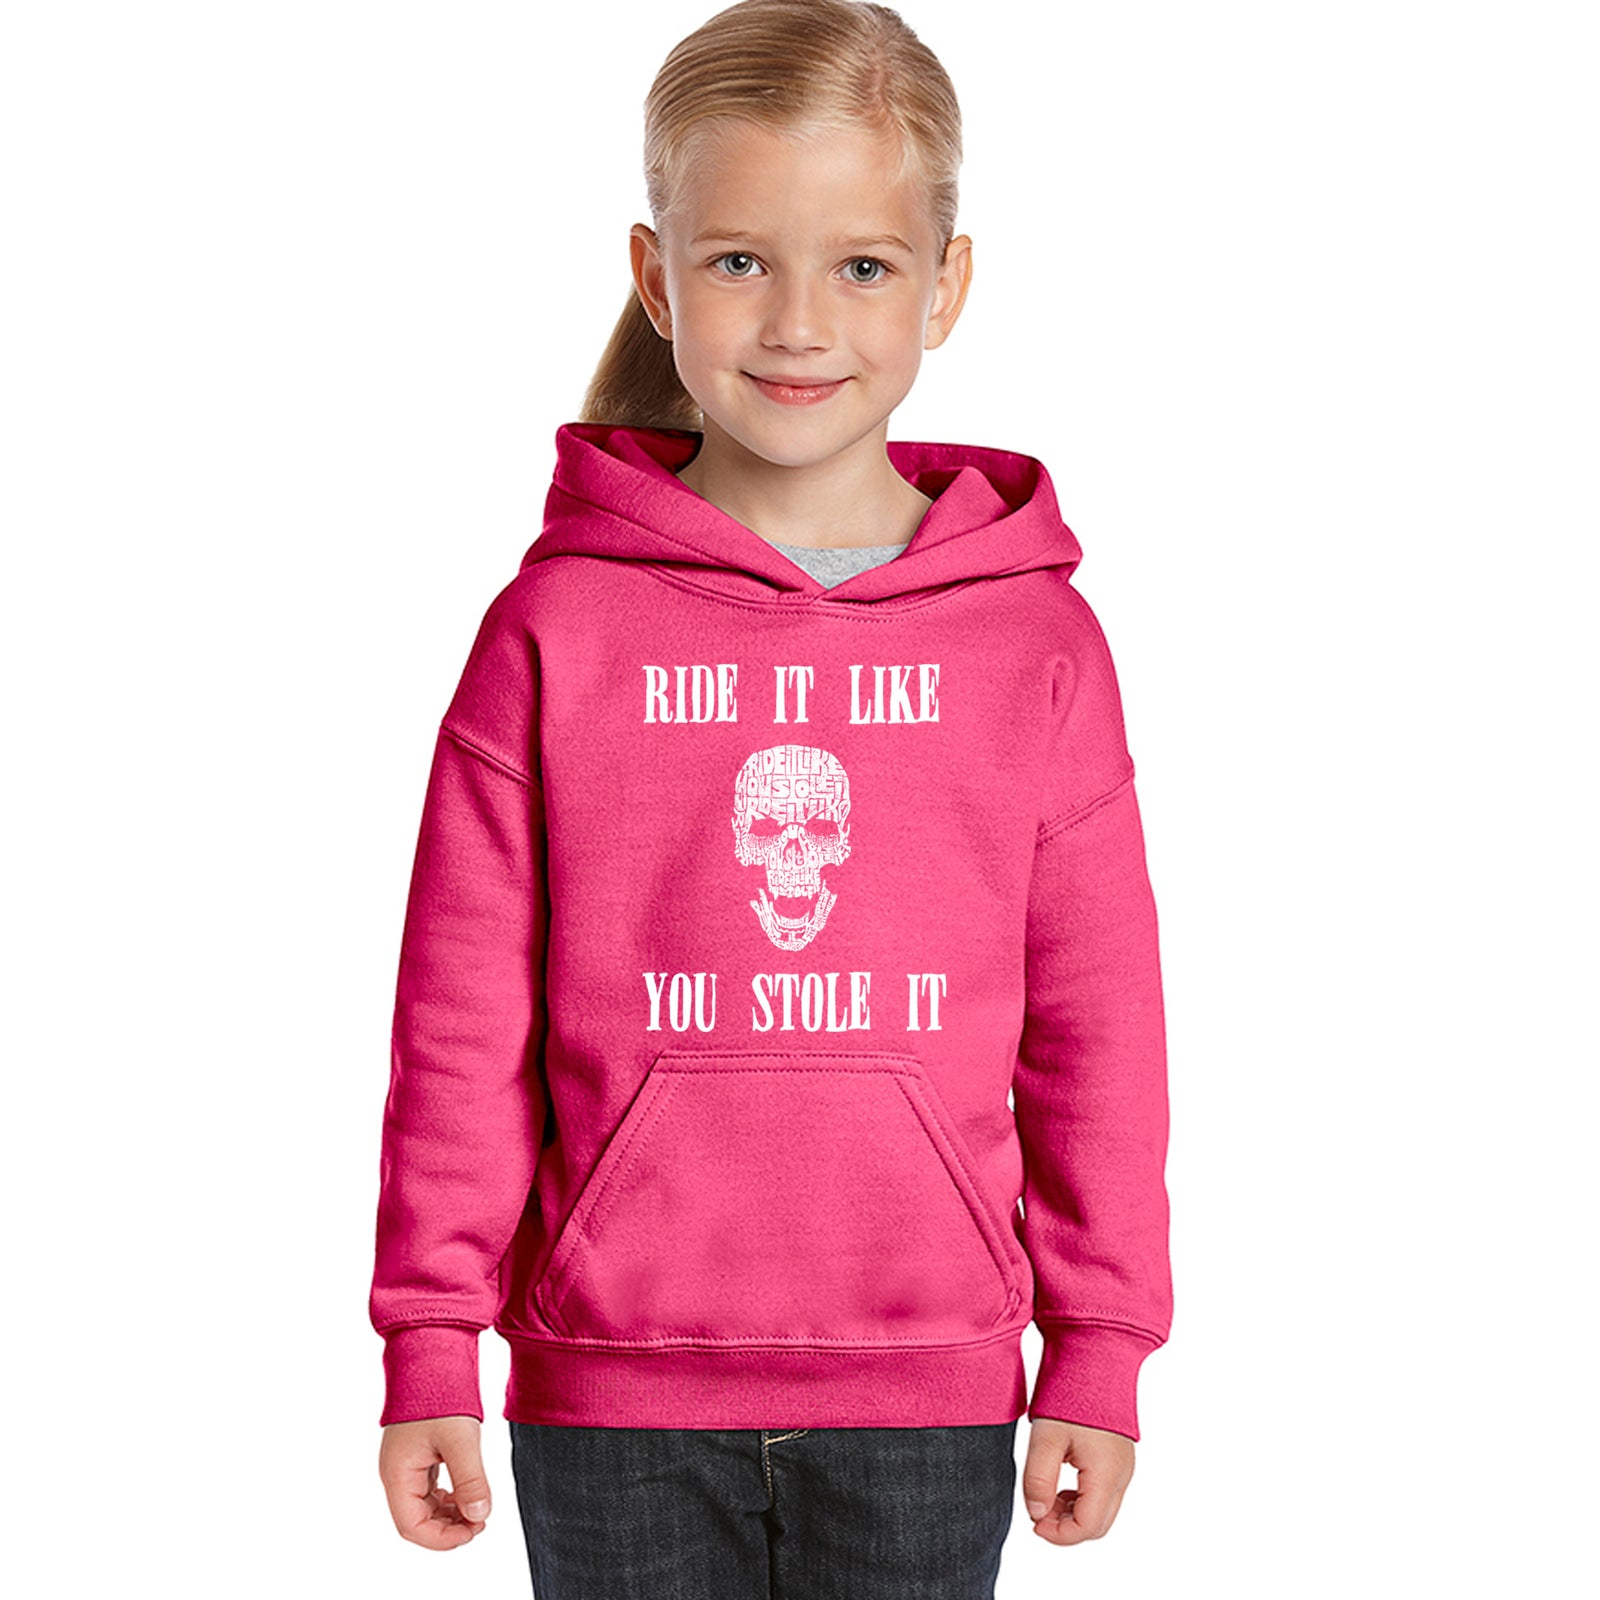 Girl's Word Art Hooded Sweatshirt - Ride It Like You Stole It